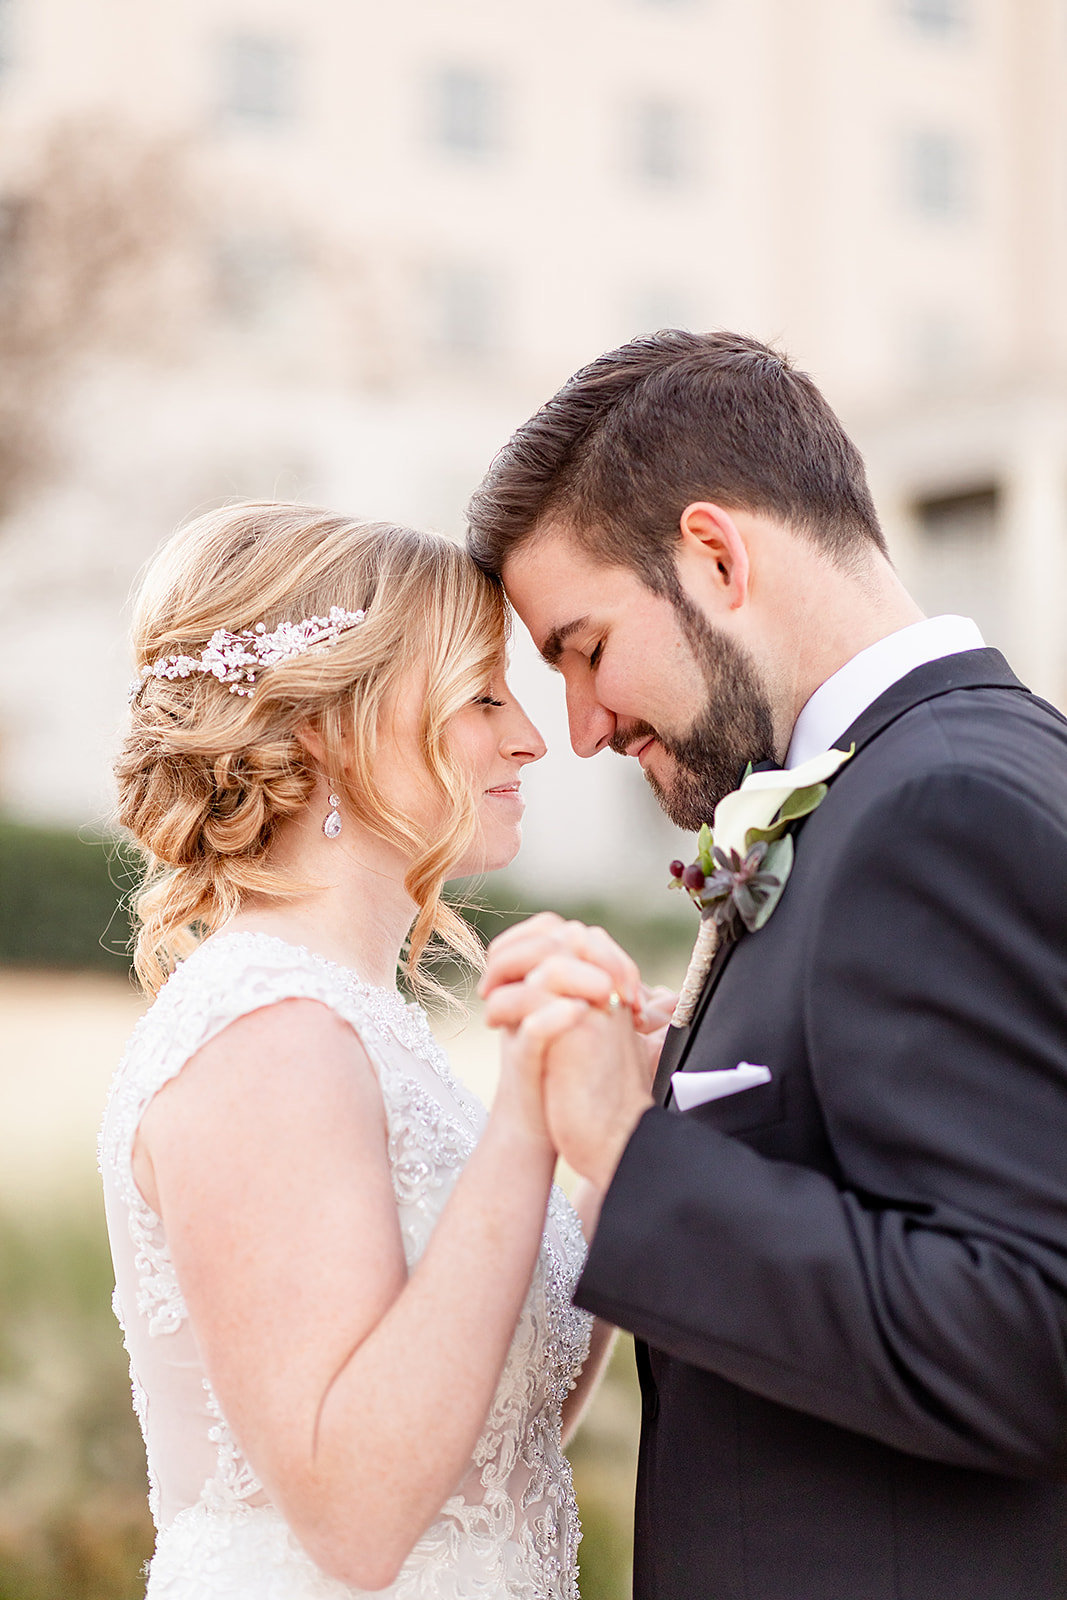 Bride and groom photo ideas for romantic wedding